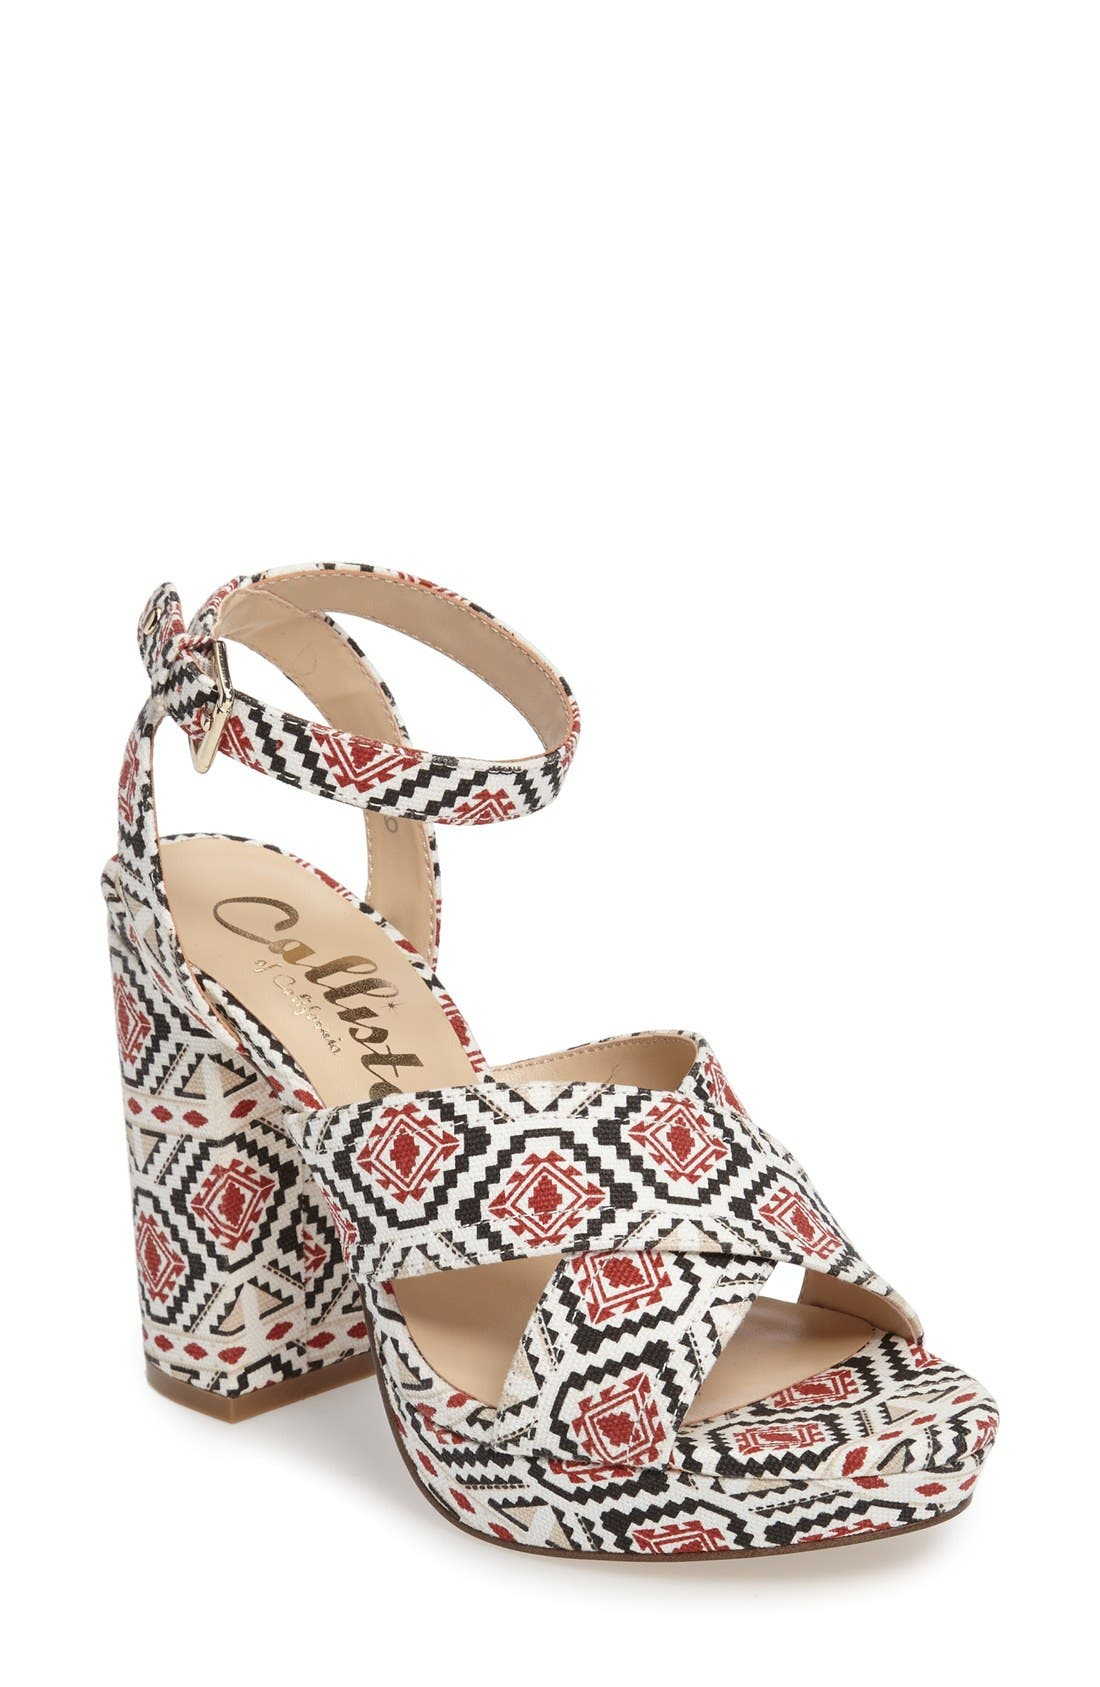 Windye Platform Ankle Strap Sandal,                         Main,                         color, Tribal Fabric